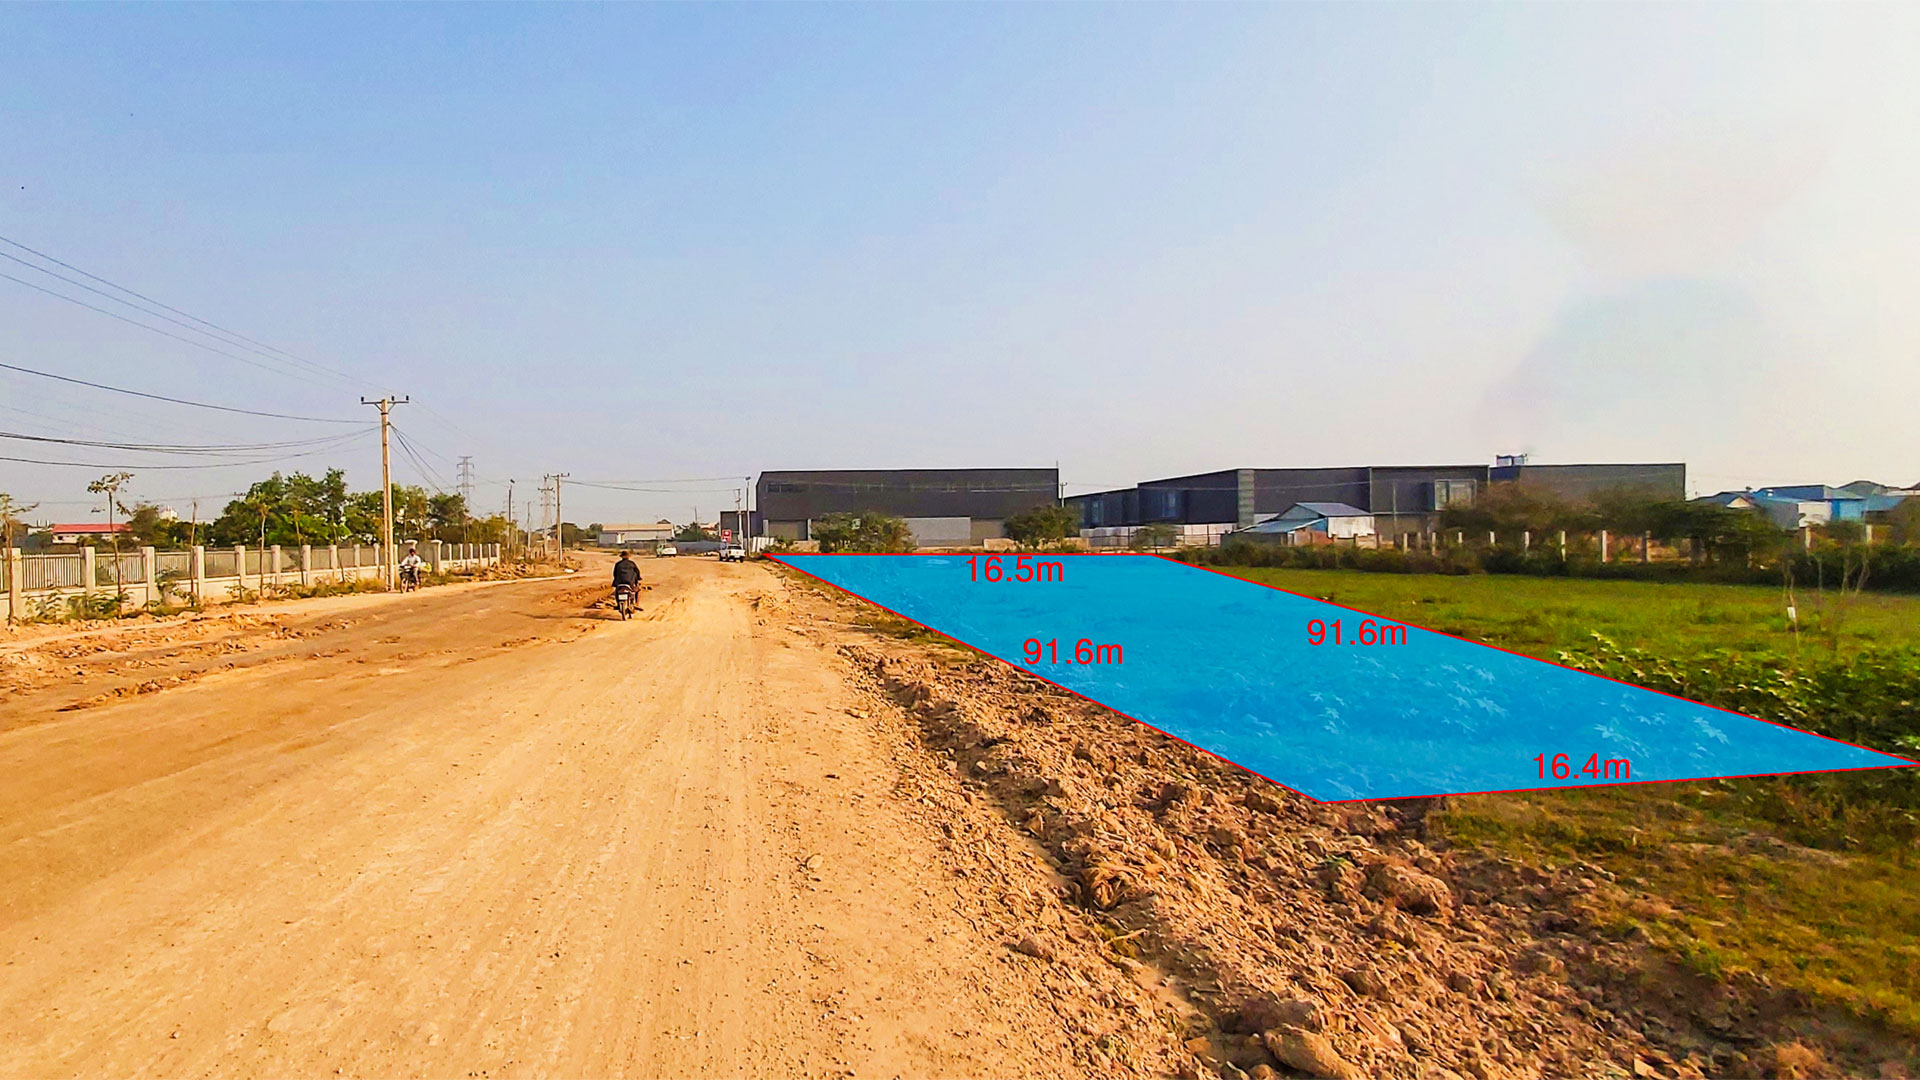 1495 Sq.m conner land for urgent sale – Krong Ta Khmau